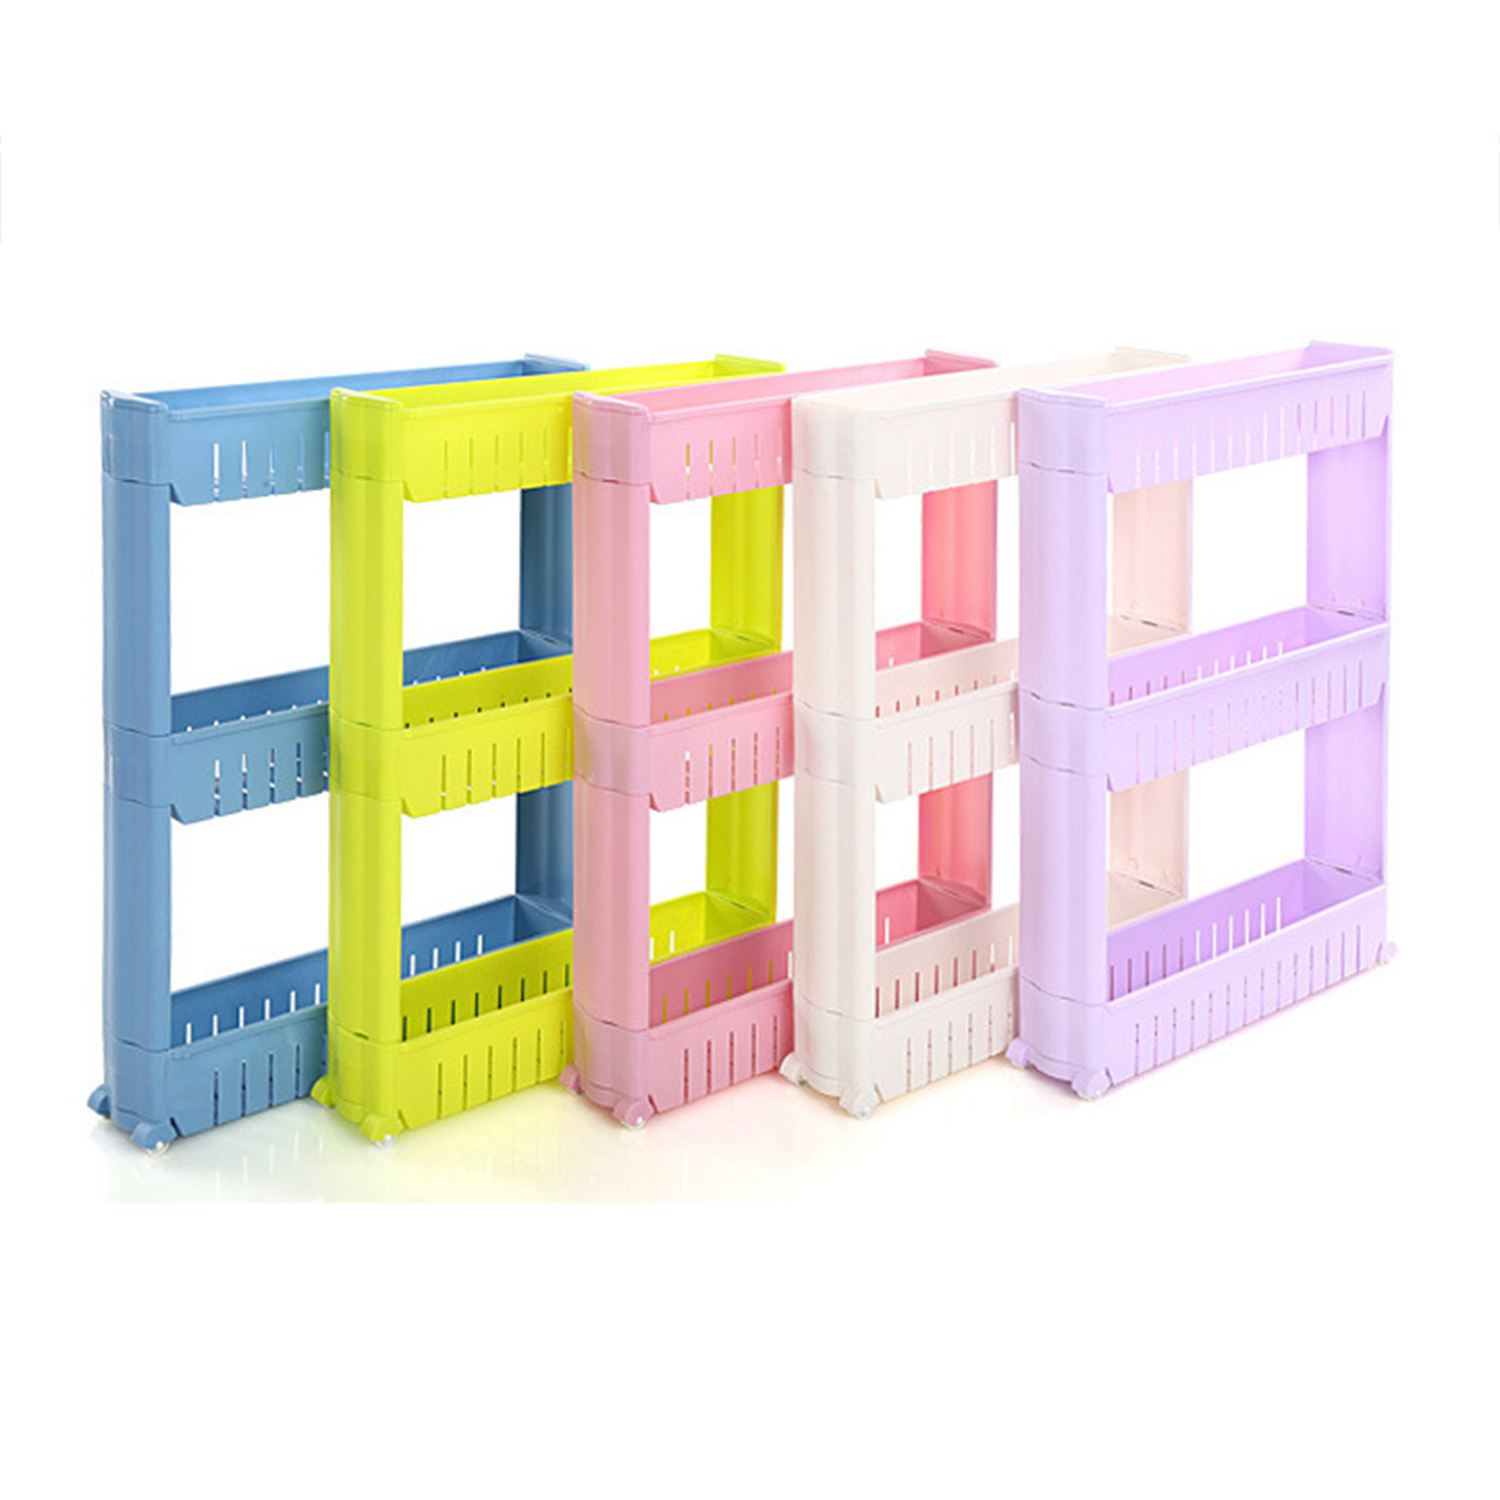 High Quality Gap Storage Shelf For Kitchen Storage Skating Movable Plastic Bathroom Shelf Save Space Three-Layers